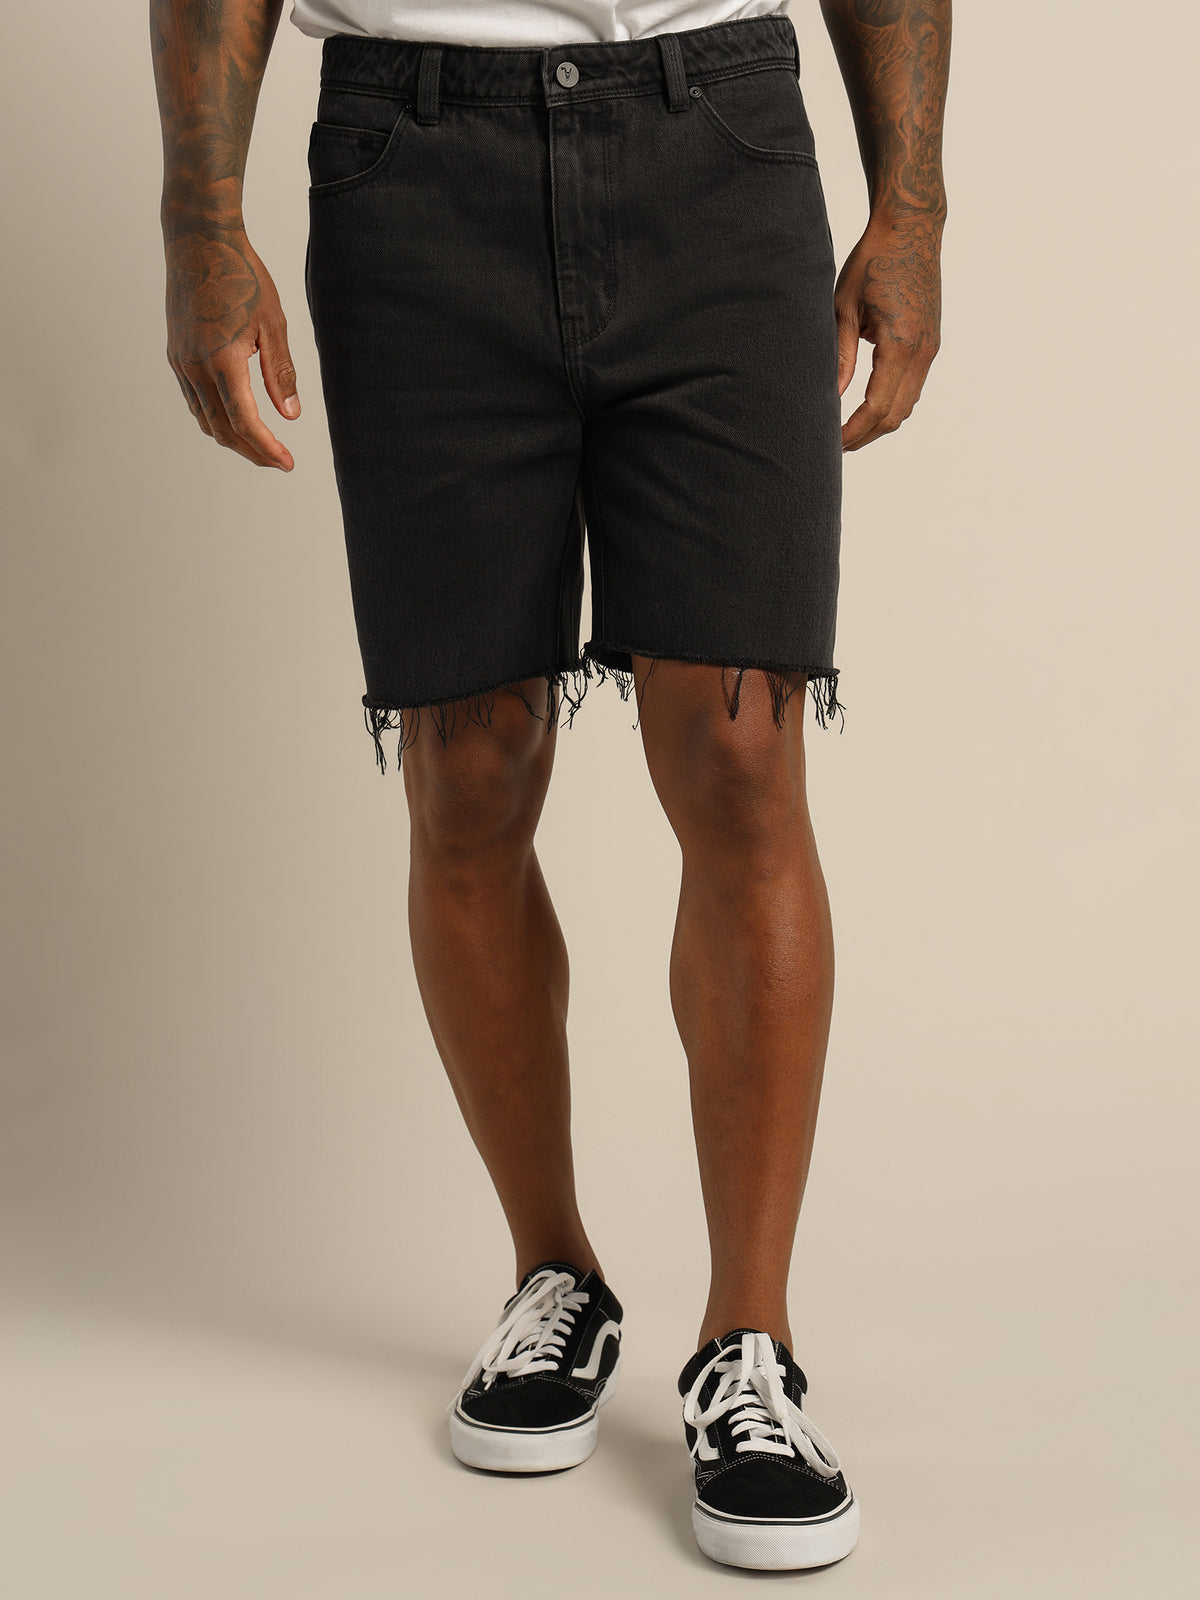 A Dropped Skinny Short in Black Sky Denim